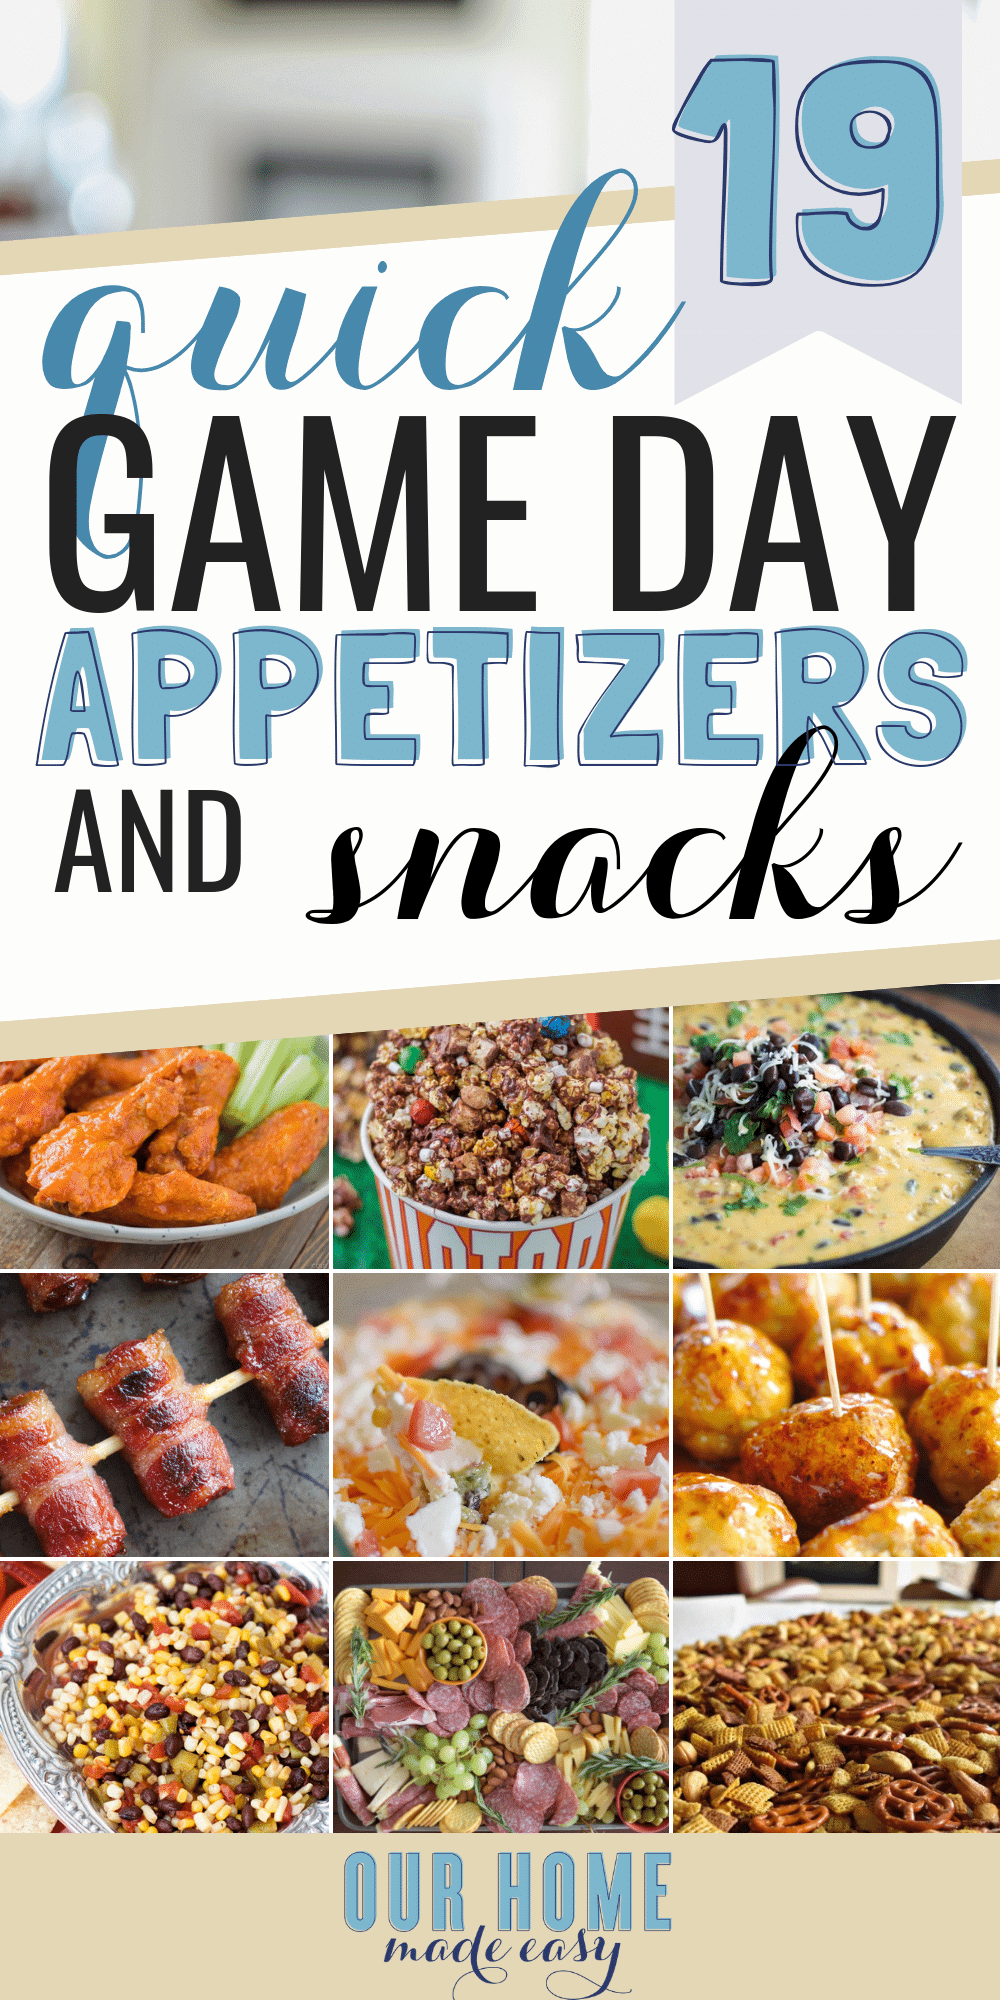 Make game day even better with these easy game day snacks & football finger foods! You can them make ahead of time, warm them up if needed, and be party ready quickly! #appetizers #partyfood #snacks #football #tailgating